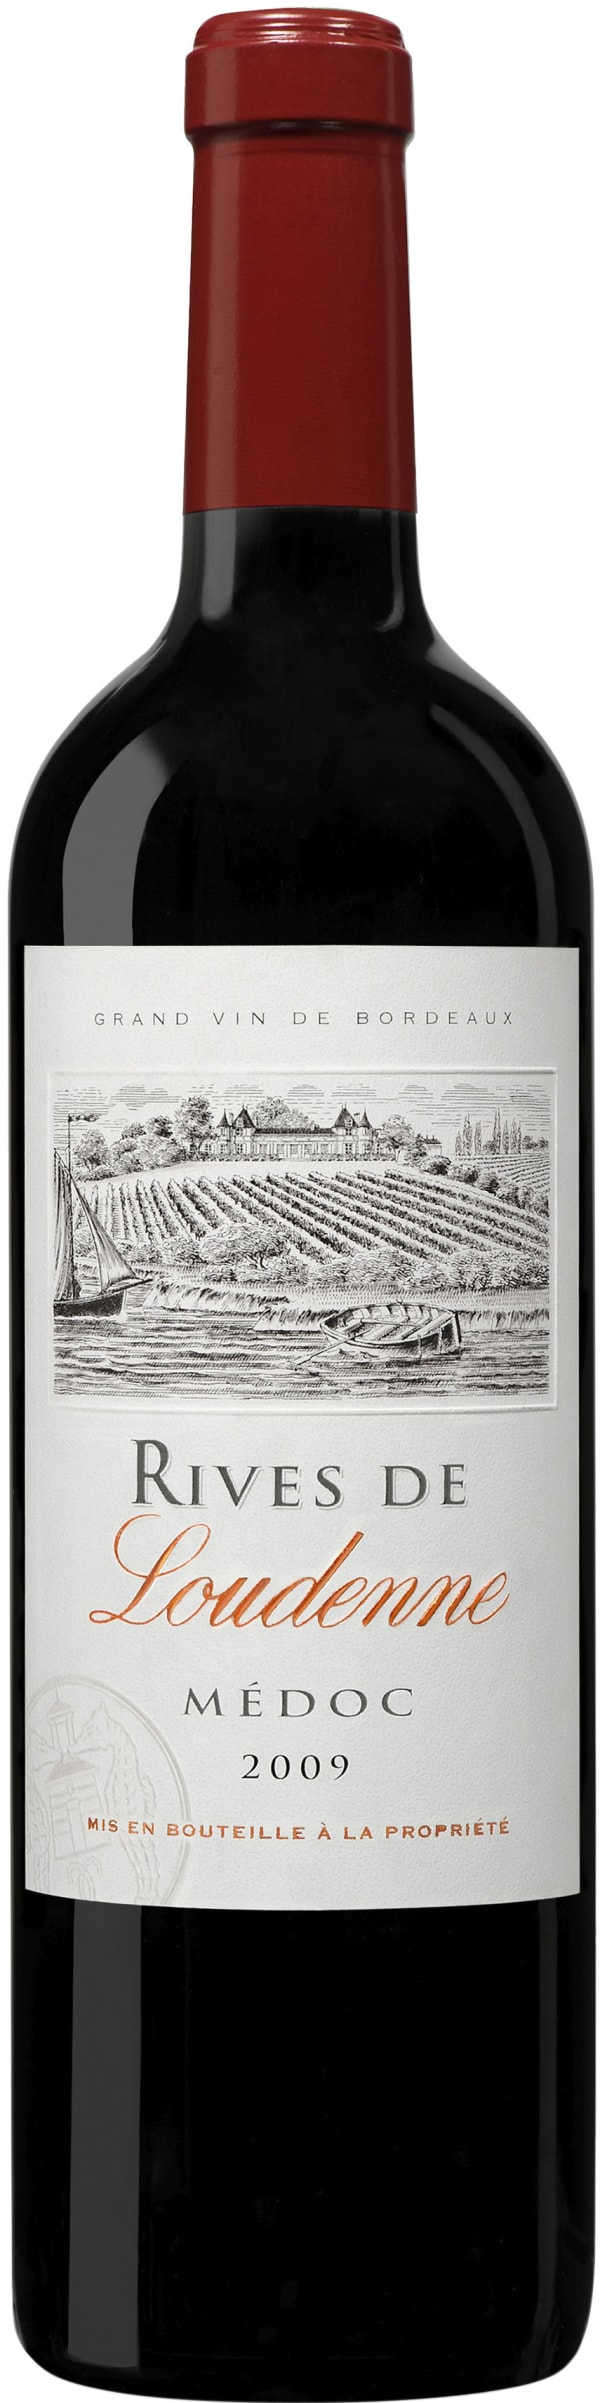 Rives de Loudenne 2013